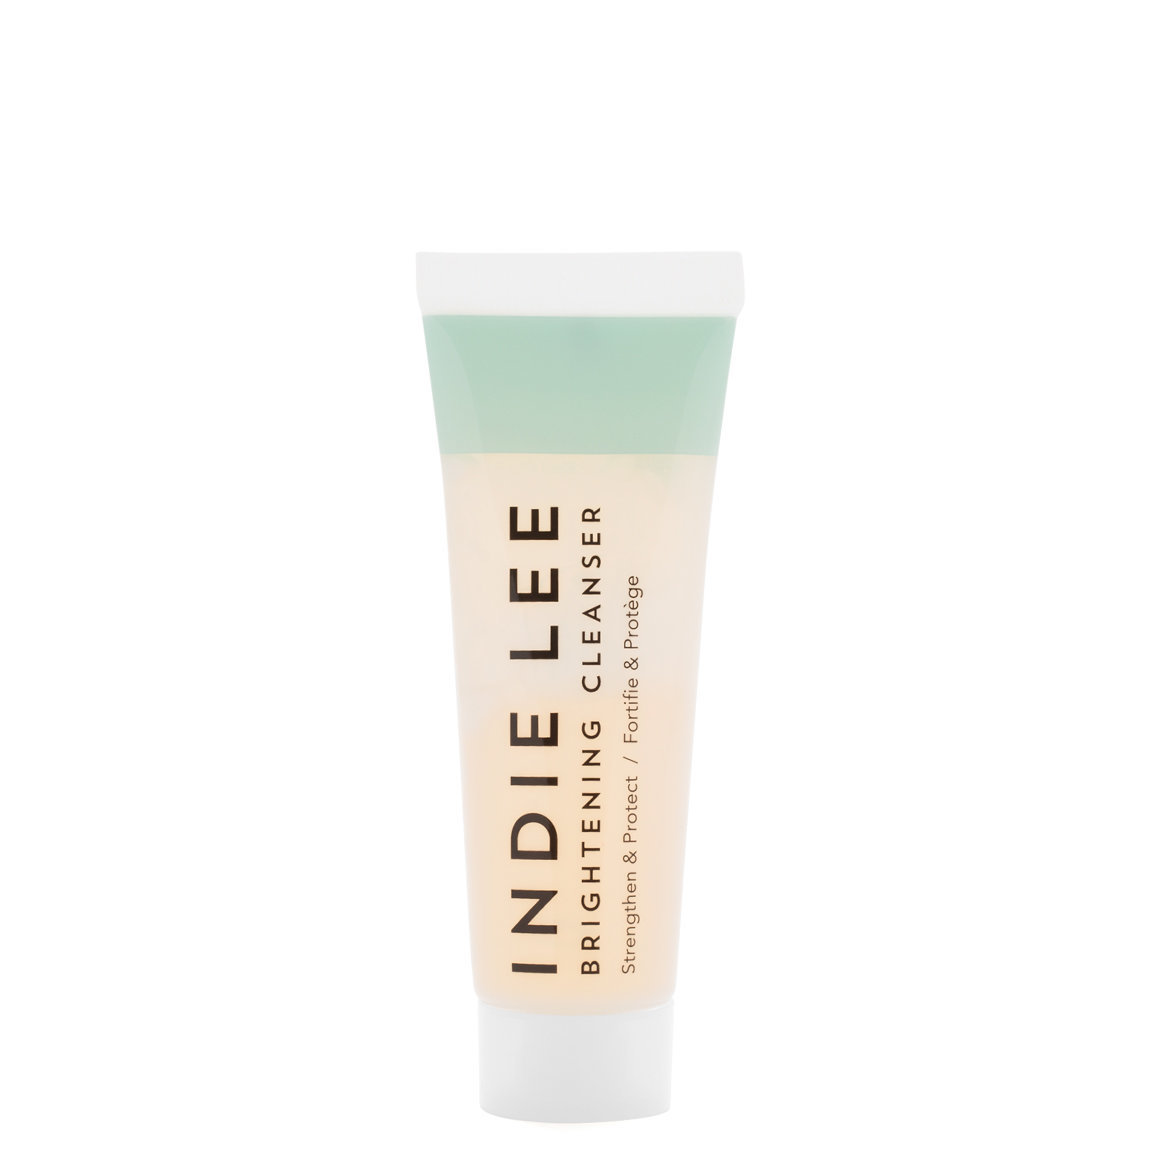 Indie Lee Brightening Cleanser 1 oz product smear.